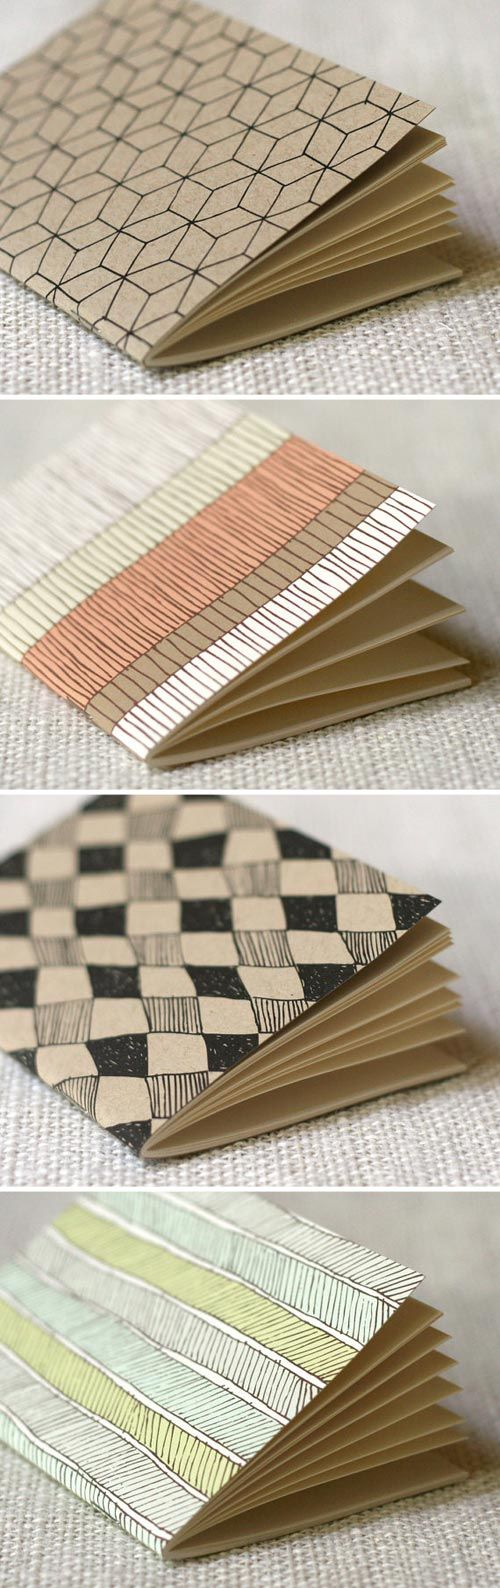 Cute diy Gift: Personalize a set of inexpensive moleskine cardboard books as a special gift! Add some fabulous pens for grownups or colorful markers for kids!